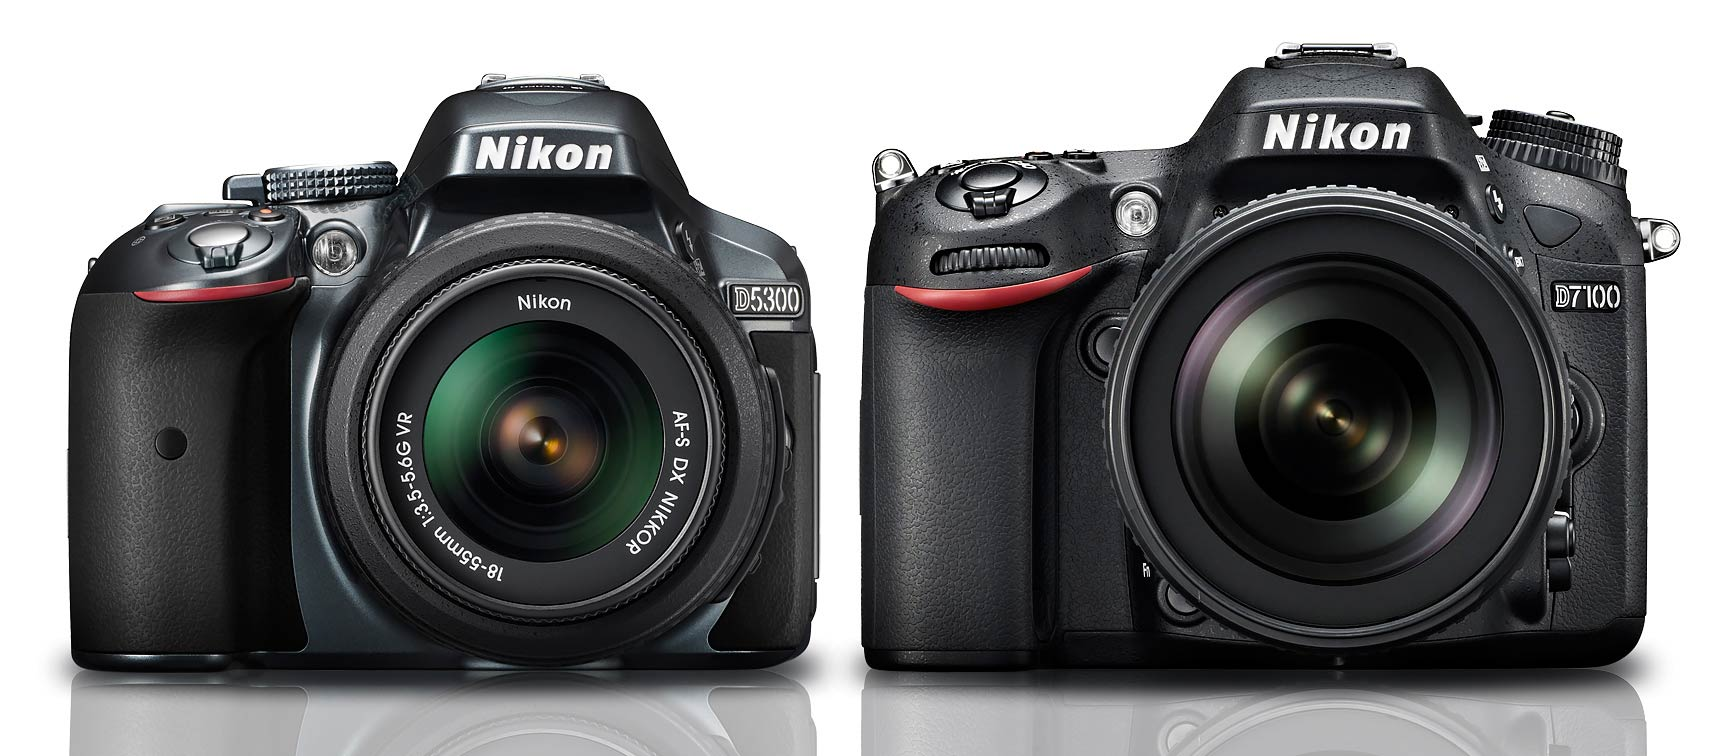 Nikon D5300 vs D7100 : Which Should You Buy? - Light And Matter